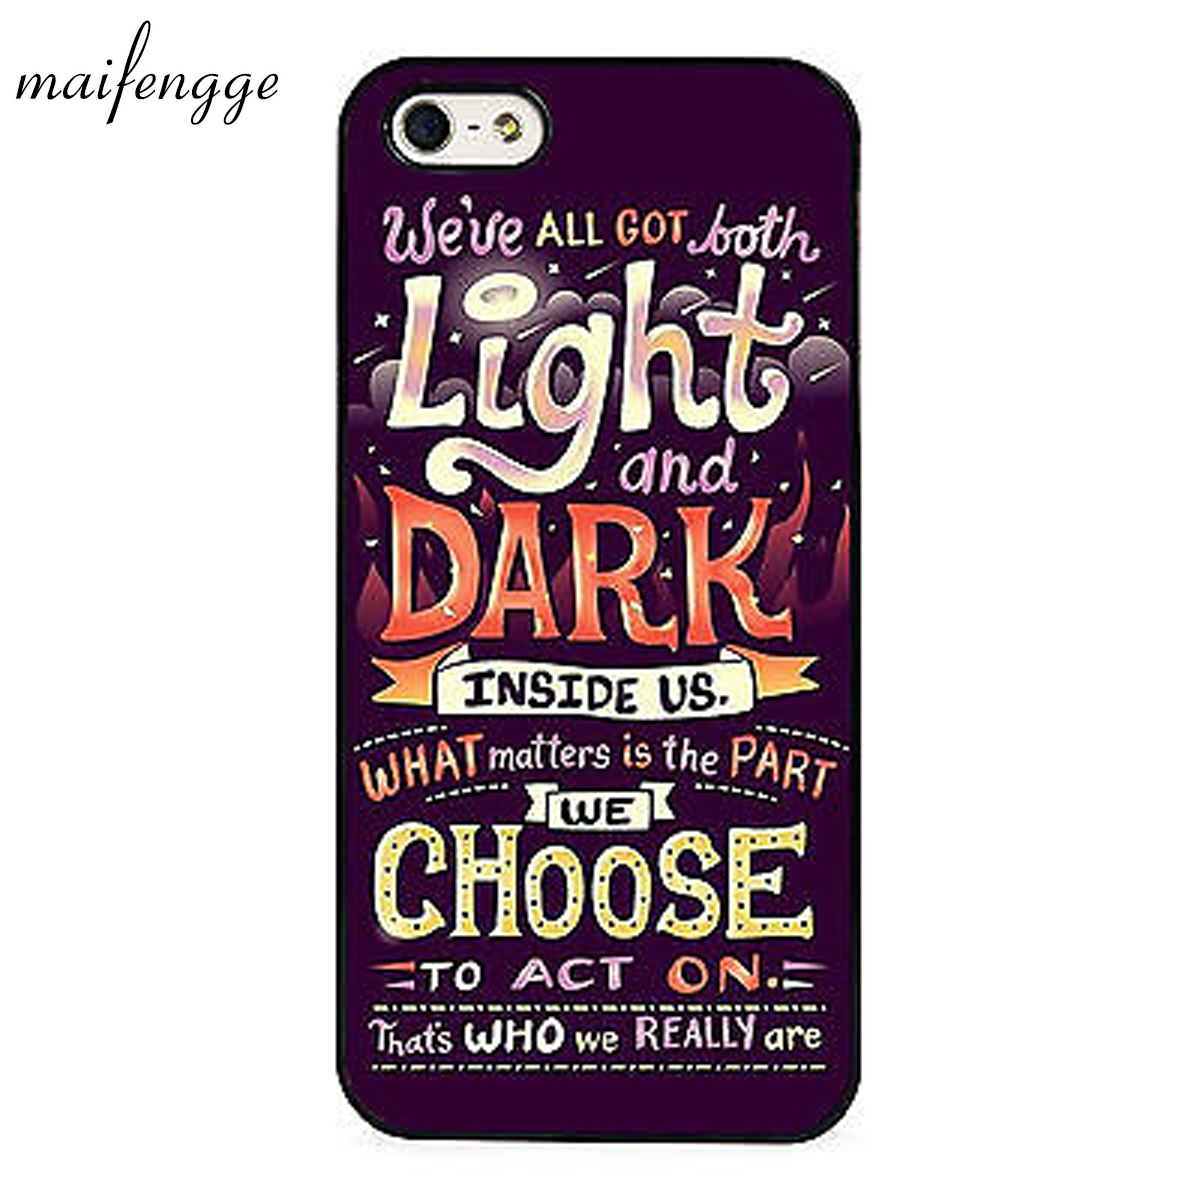 Maifengge Harry Potter Sirius Black Quote Case For Iphone 6 6s 7 8